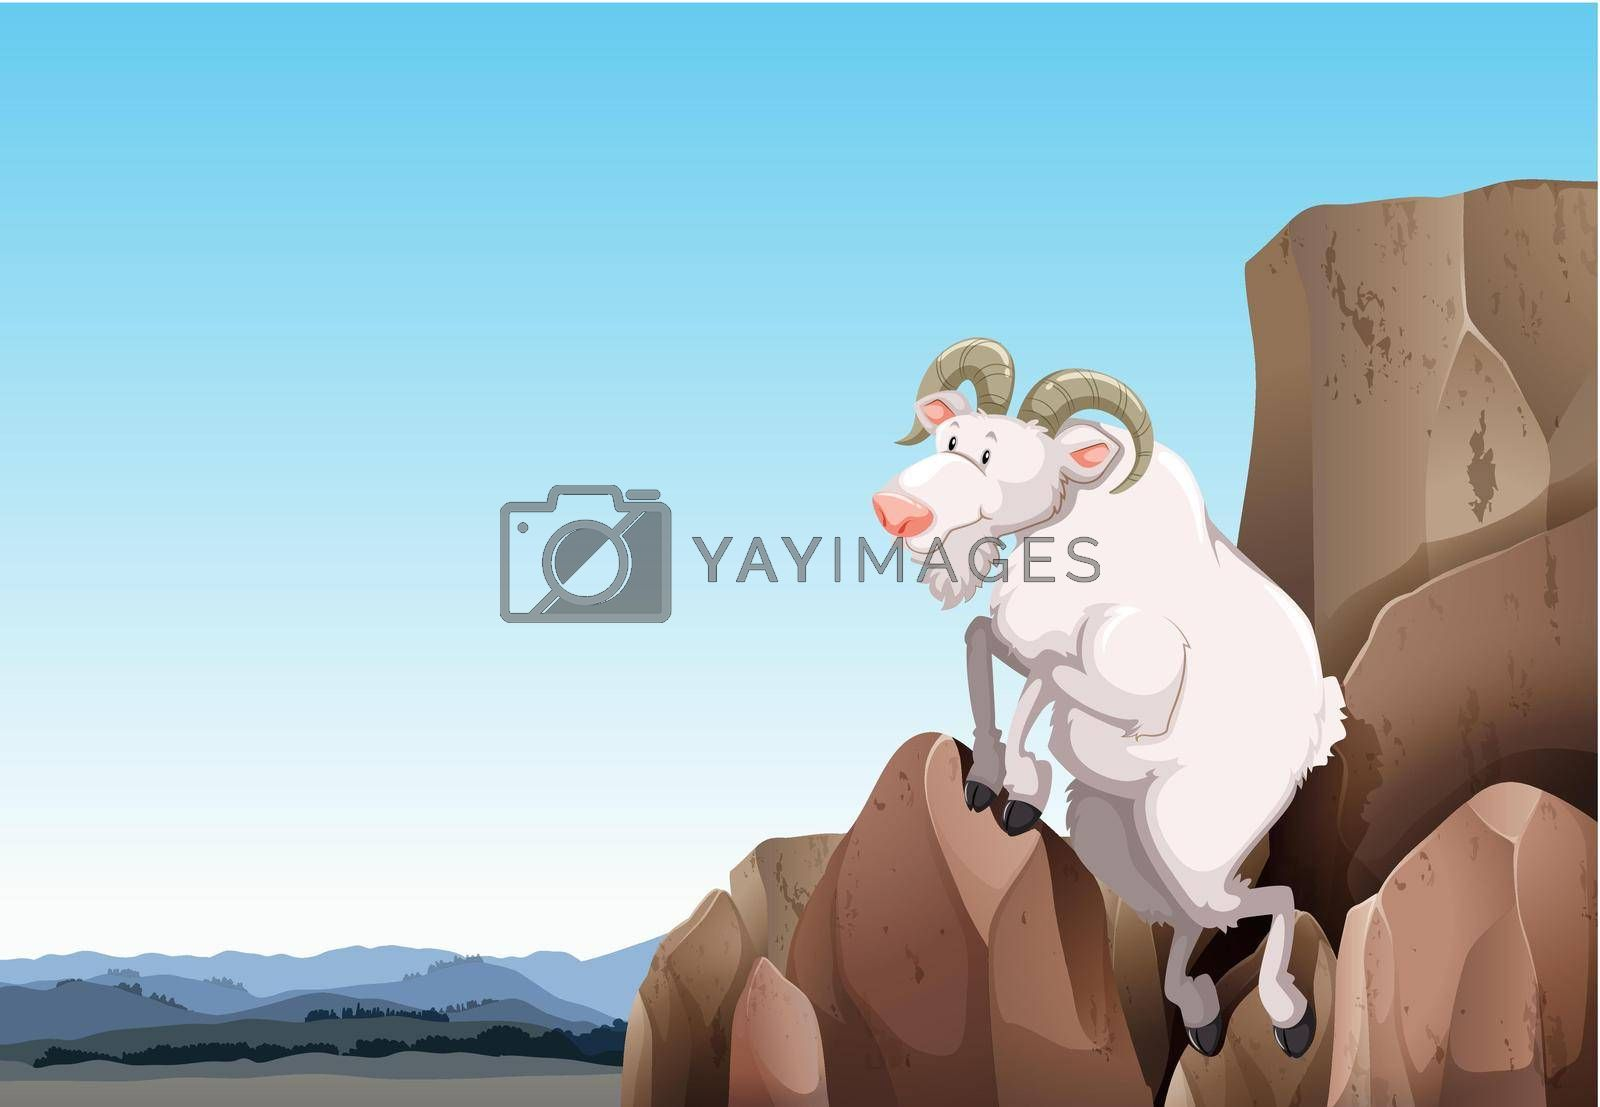 Royalty free image of White goat by iimages